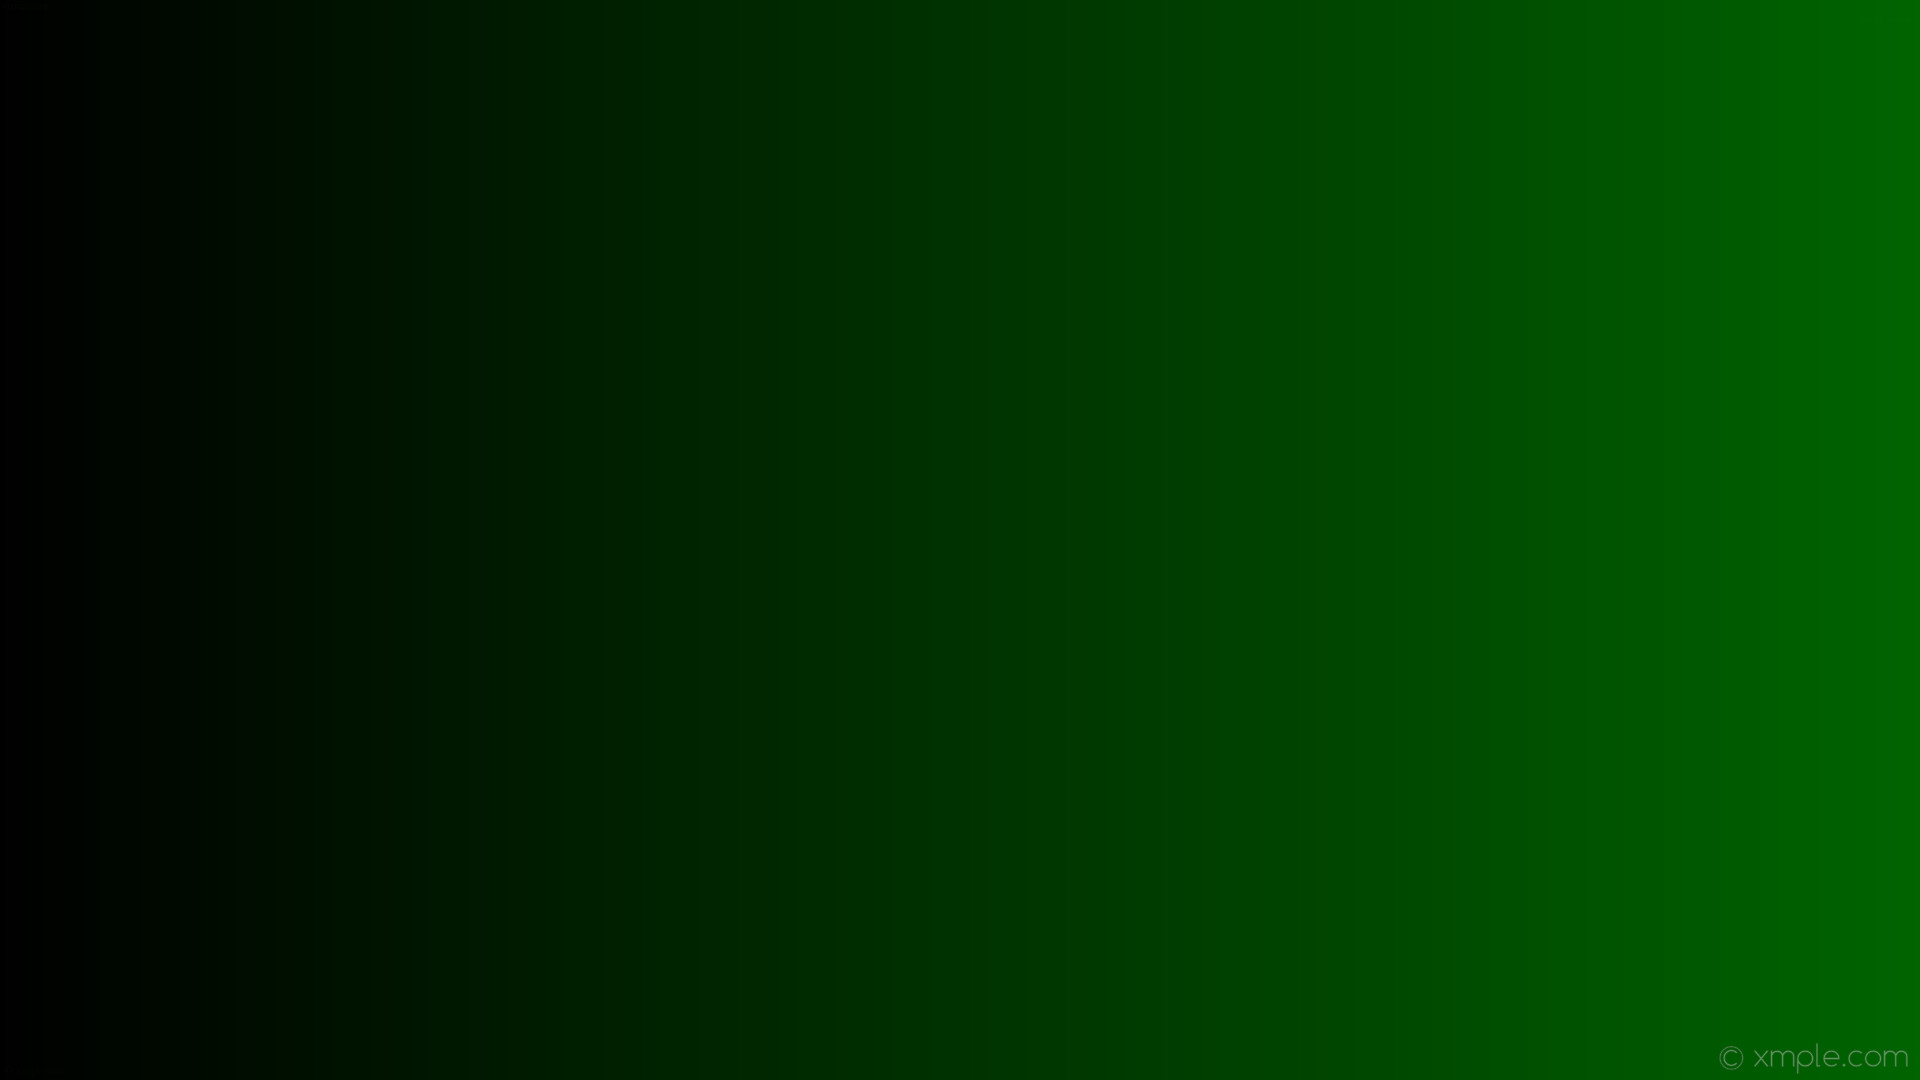 1920x1080 wallpaper gradient linear green black dark green #006400 #000000 0°